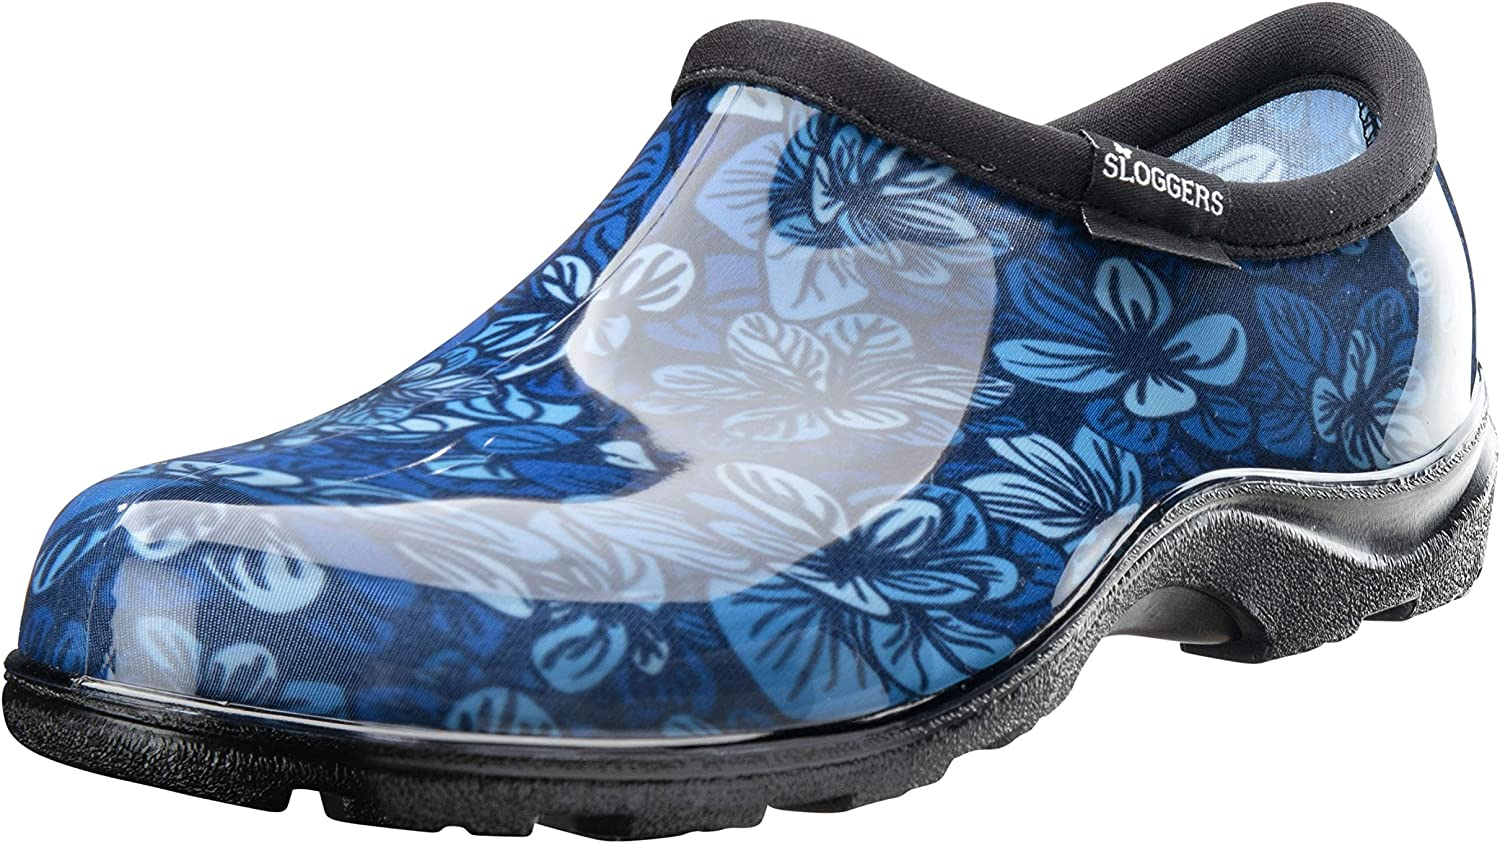 Sloggers Women's Waterproof Rain Garden Shoe Comfort Insole (6, Blooming Leaves Blue)